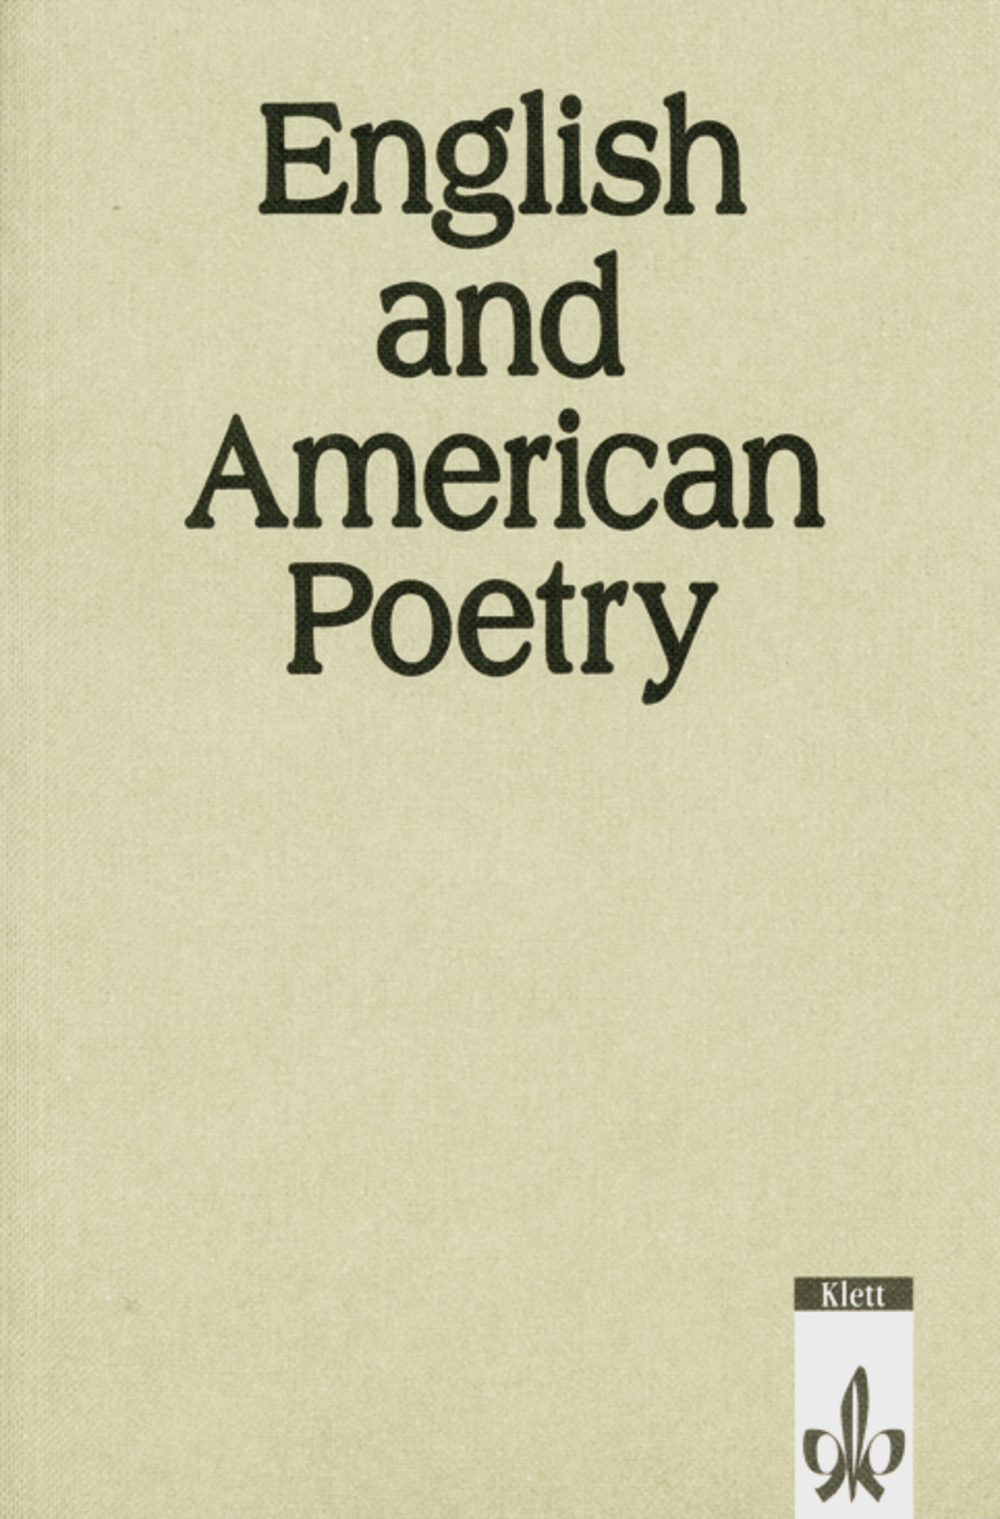 English and American Poetry, Book